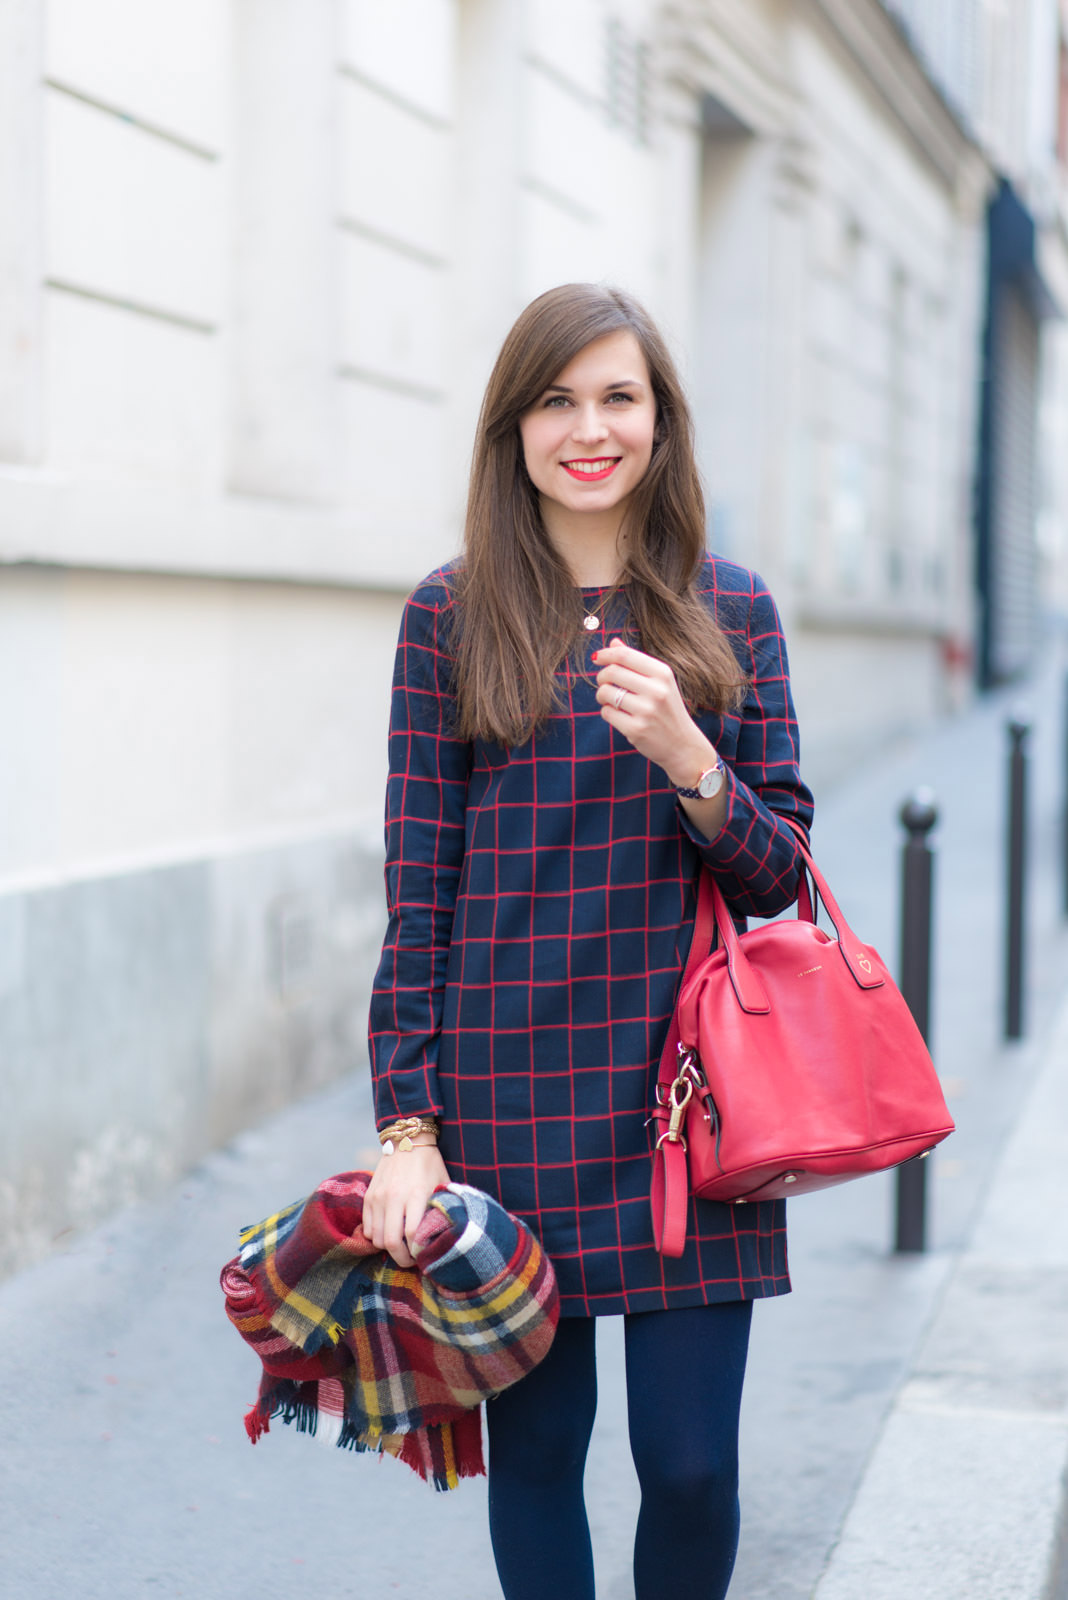 Blog-Mode-And-The-City-Lifestyle-Les-Cinq-Petites-Choses-151-robe-Boohoo